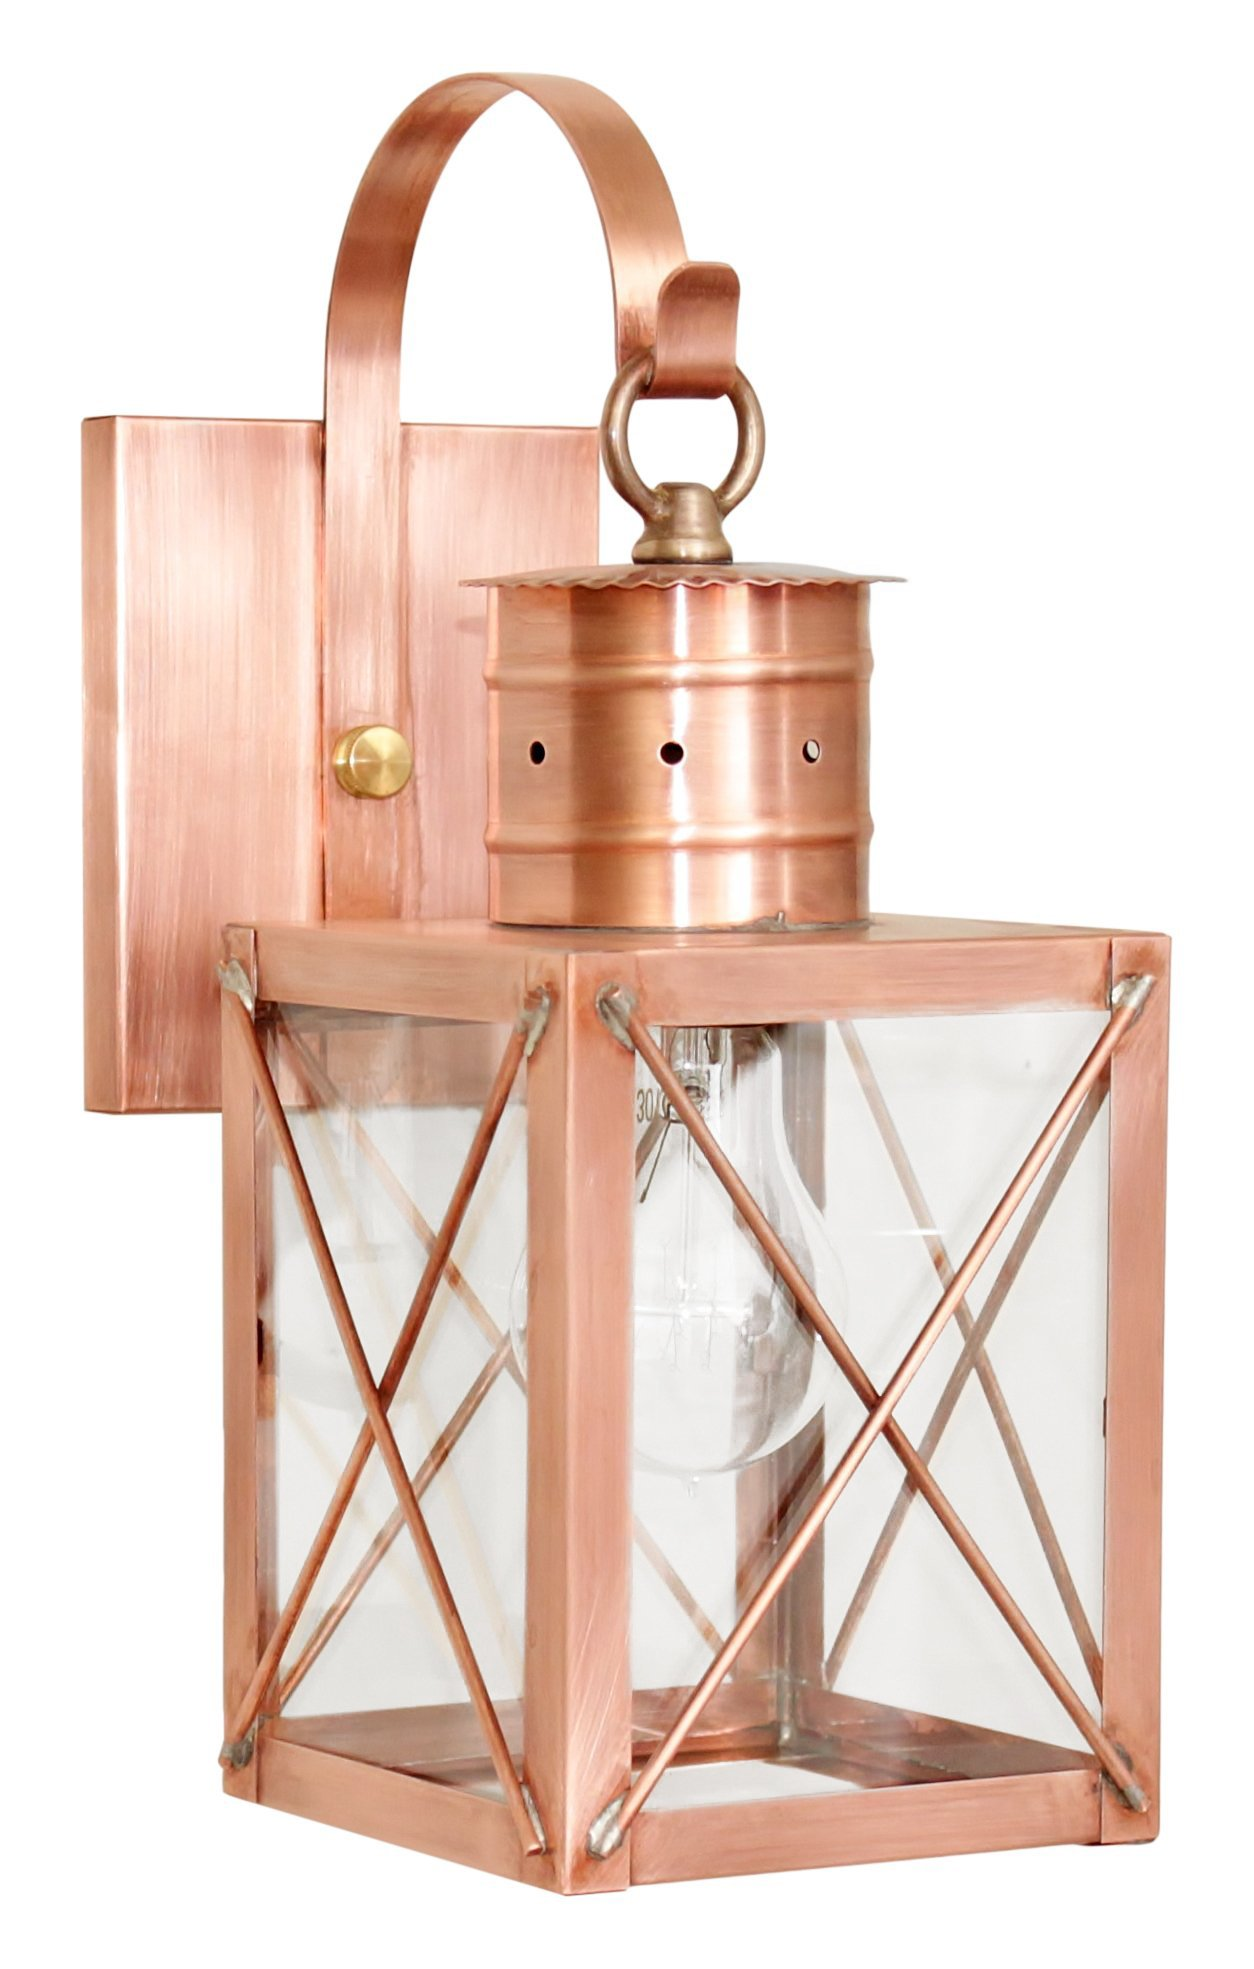 Brass Traditions 231-P CXAC Small Wall Lantern 200 Series Profile Bracket, Antique Copper Finish 200 Series Profile Bracket Wall Lantern